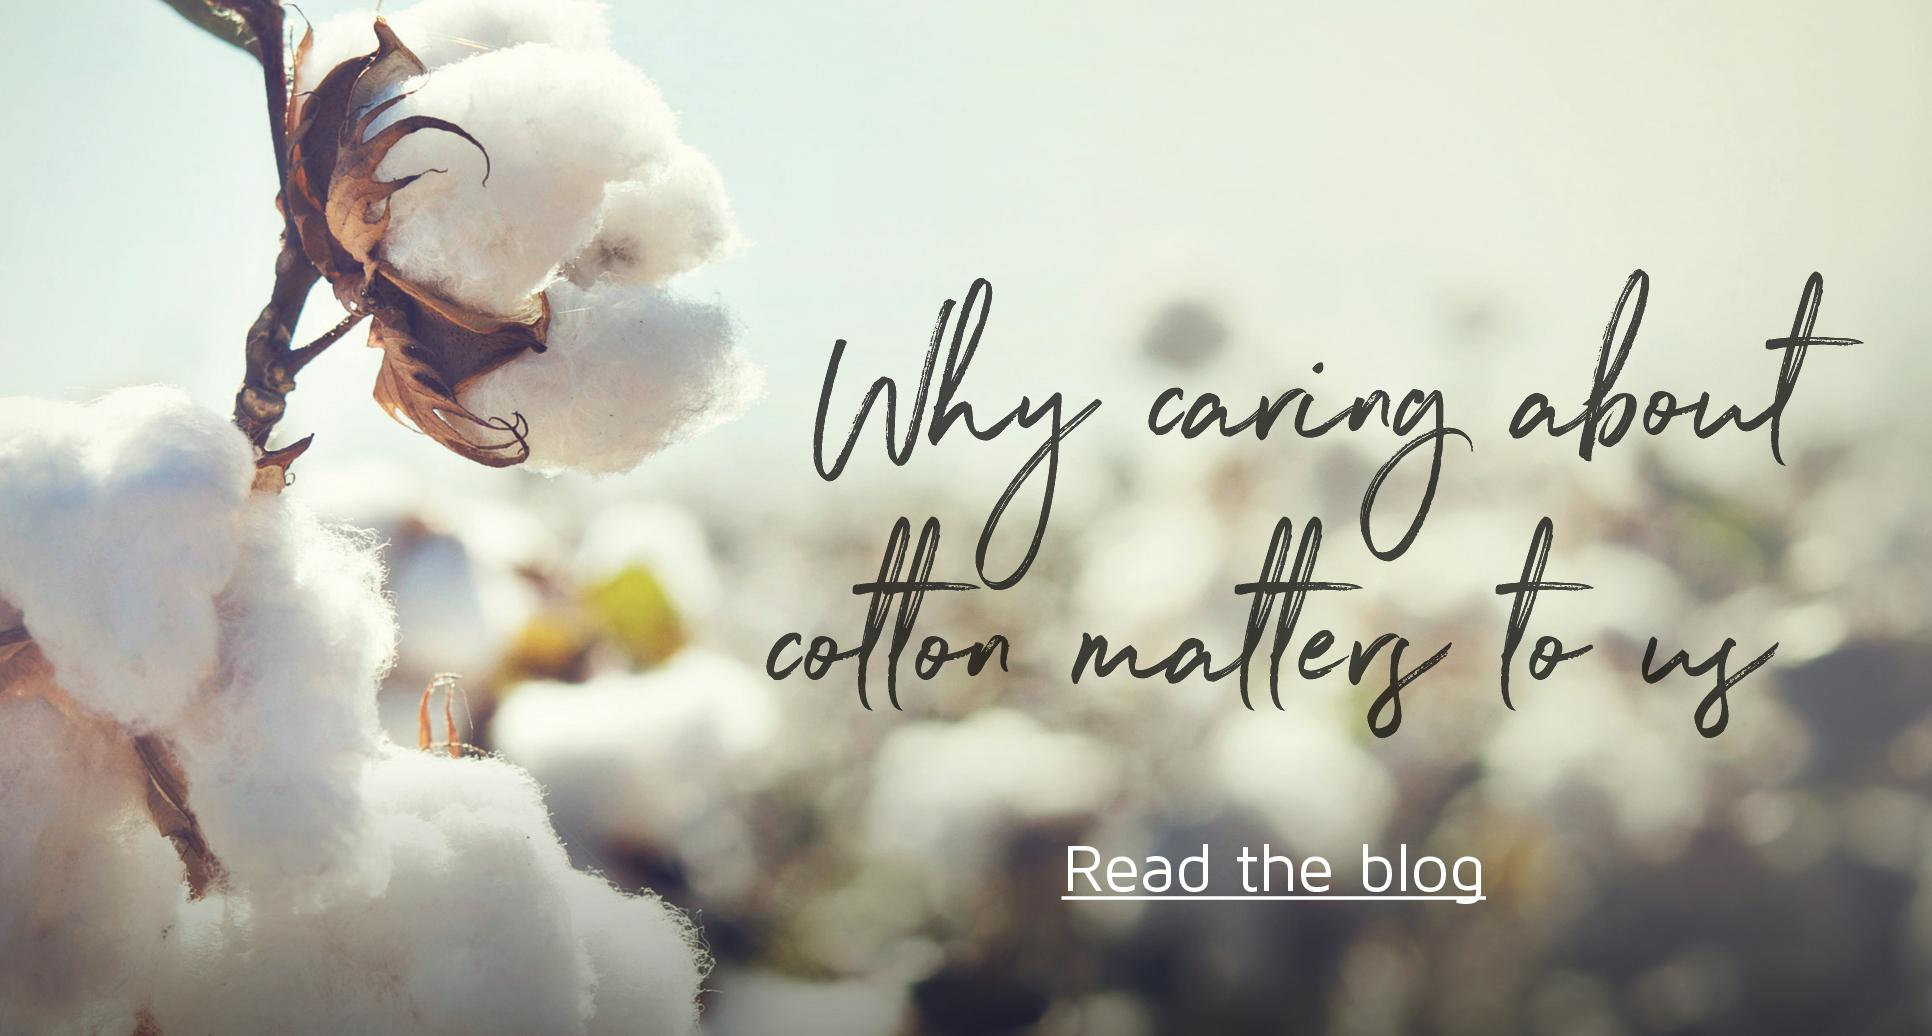 Caring about Cotton